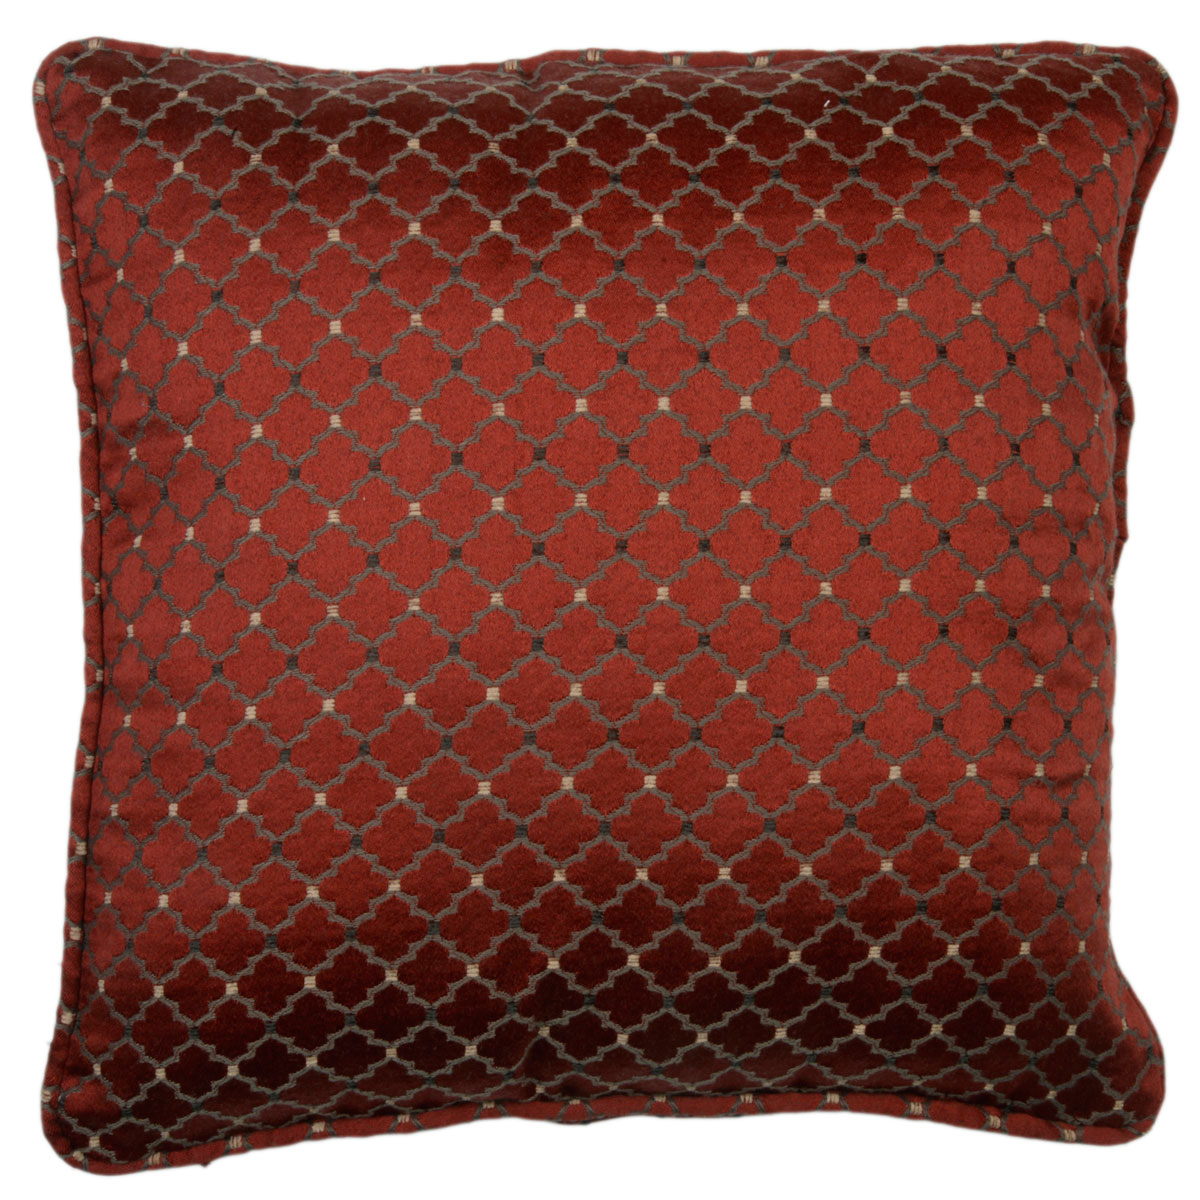 Bargain Spice Marrakech Filled Cushion Stockists